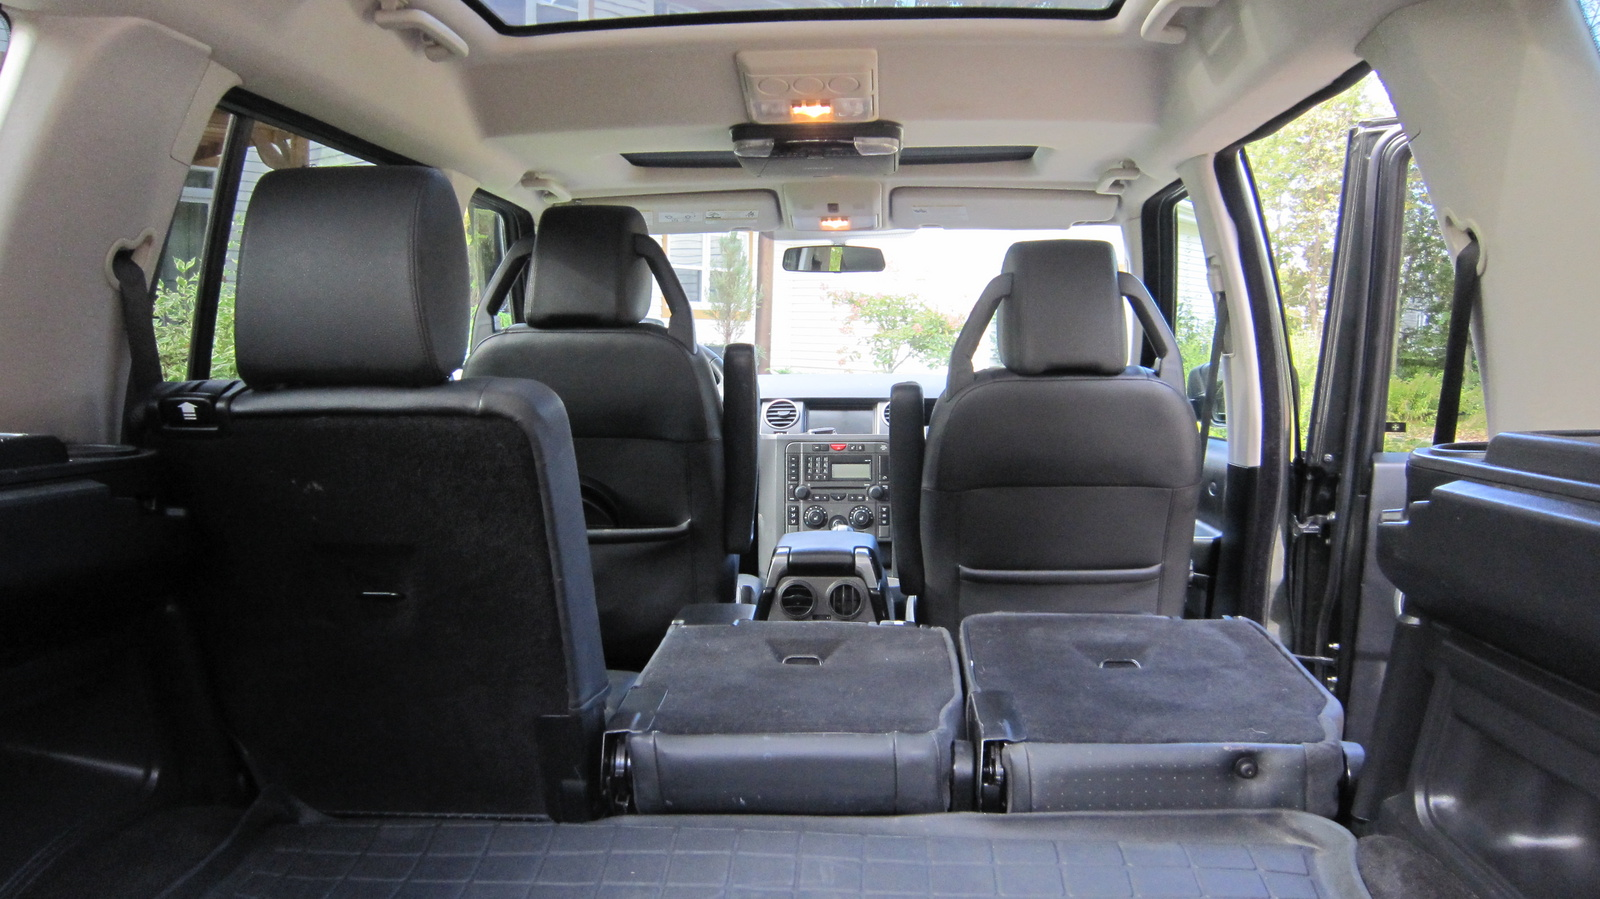 Who Owns Range Rover >> 2005 Land Rover LR3 - Pictures - CarGurus